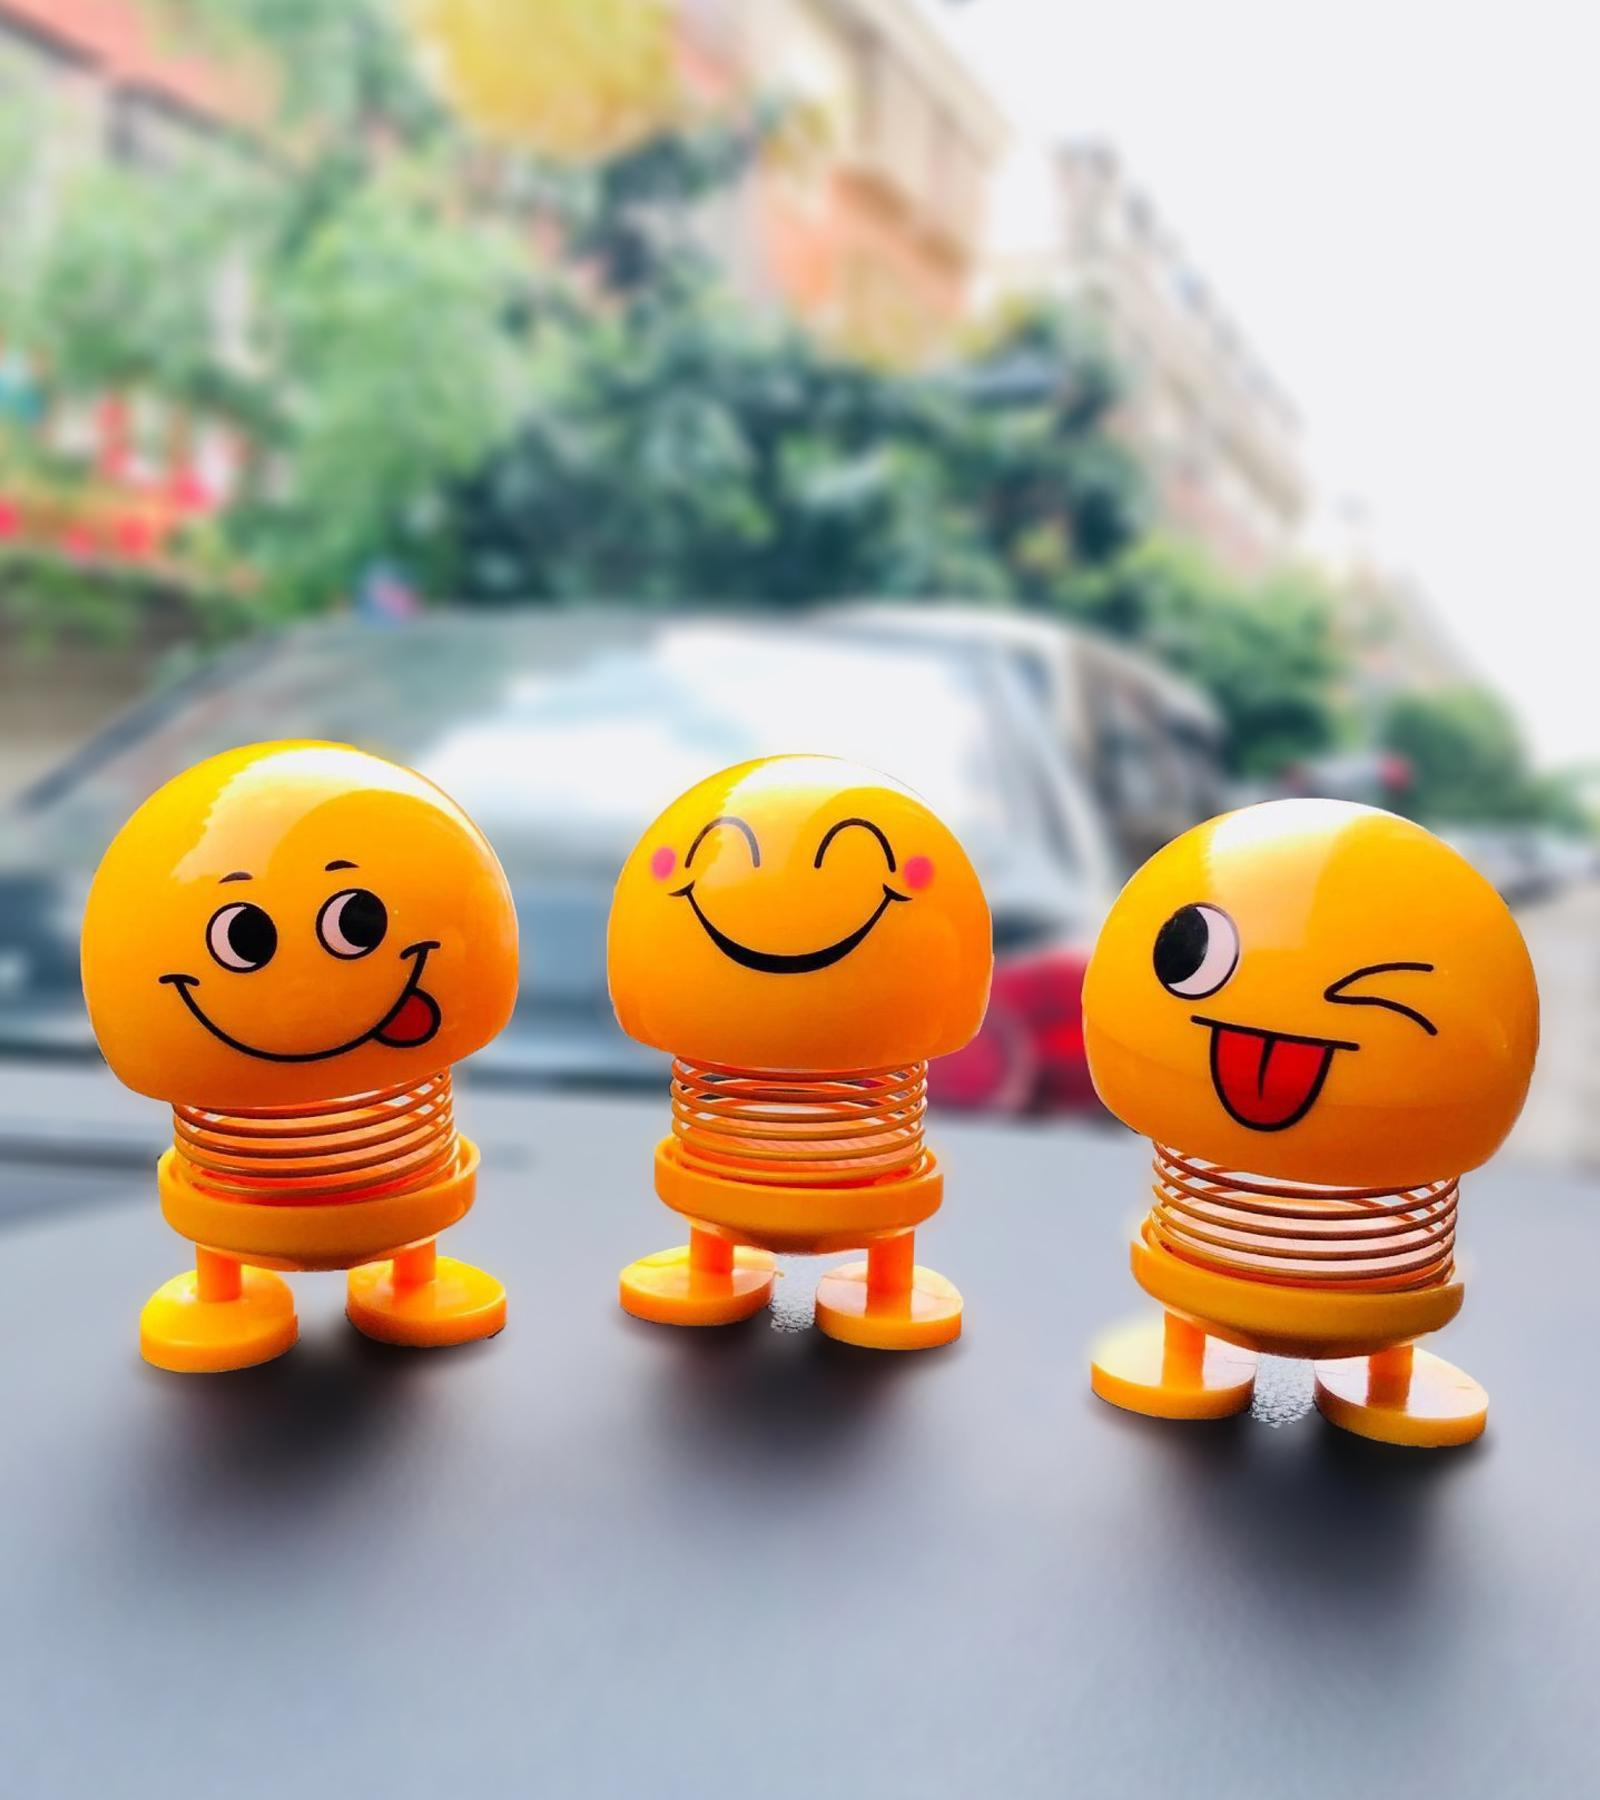 Creative Shaking Head Dolls Cute Emoji Springs Dancing Toys Action Figures Bounce Toys for Car Dashboard,Home,Table Decor